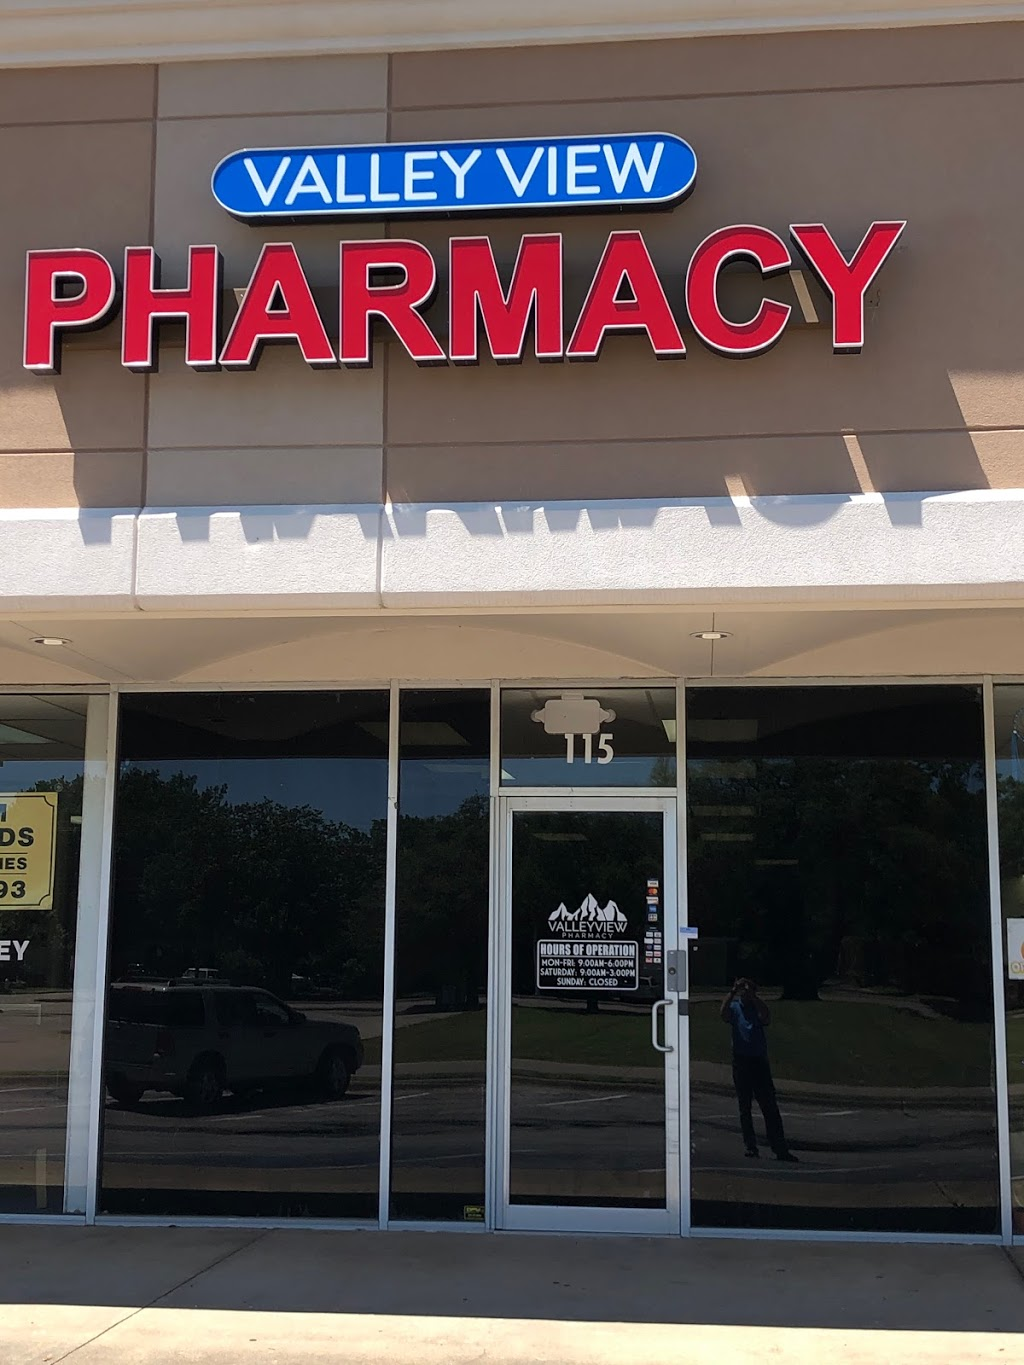 Valley View Pharmacy - Farmers Branch - pharmacy  | Photo 1 of 3 | Address: 12879 Josey Ln #115, Farmers Branch, TX 75234, USA | Phone: (972) 982-2232